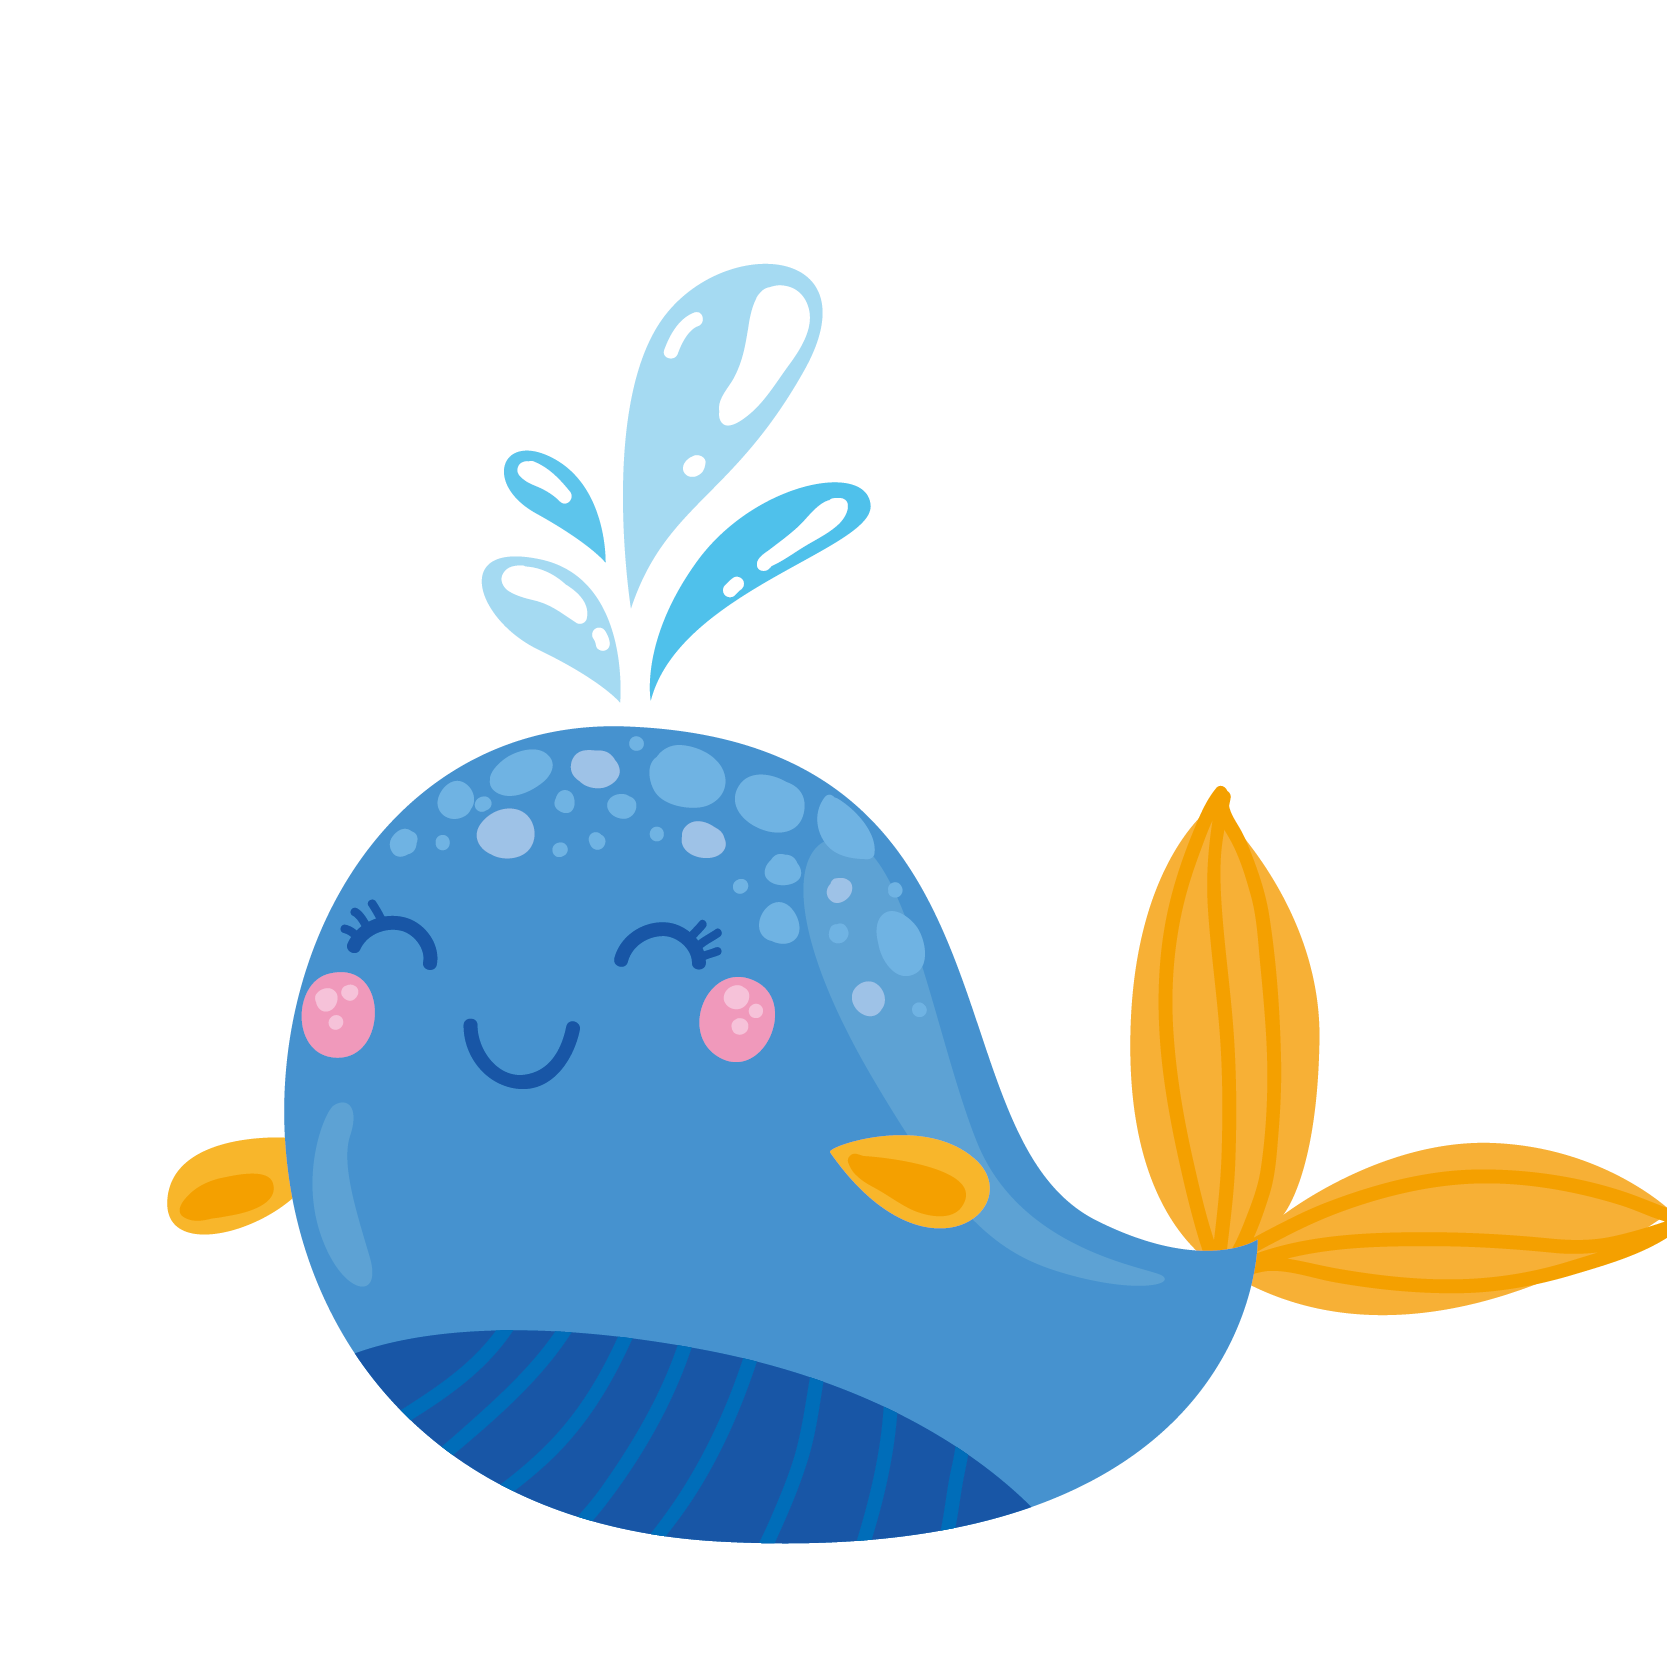 Narwhal clipart chocolate. Whale cartoon adobe illustrator